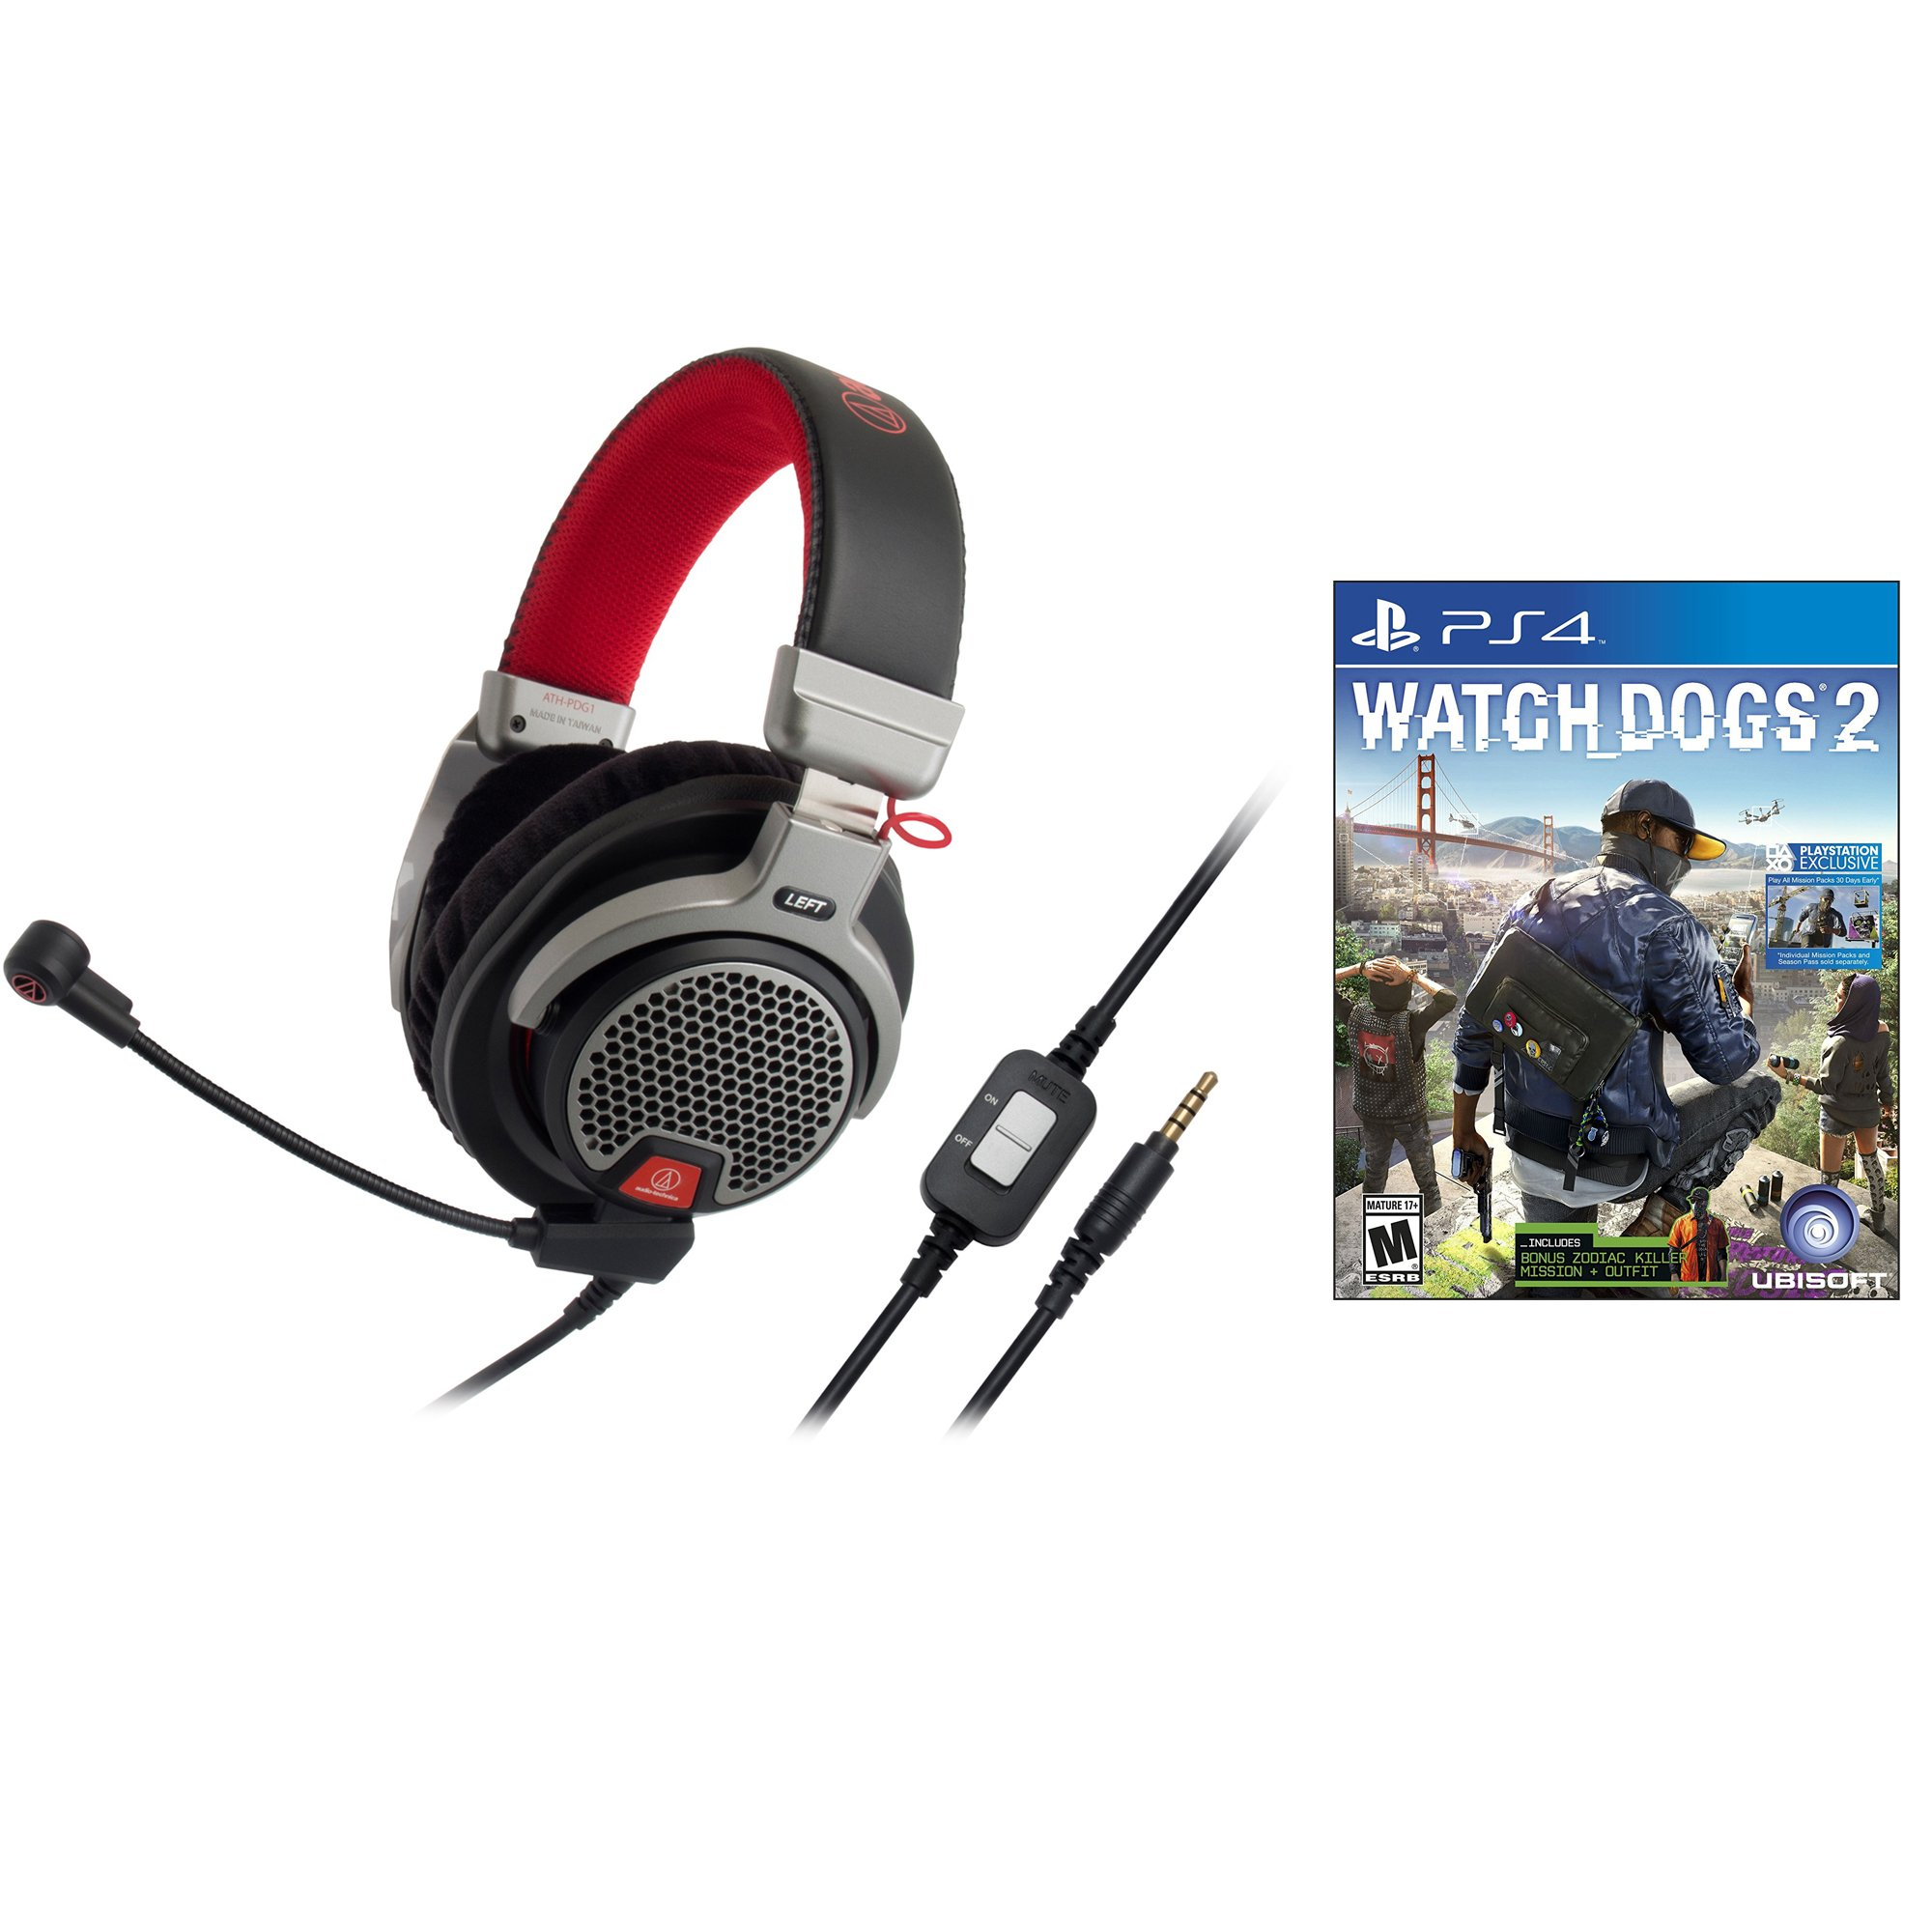 Audio-Technica ATH-PDG1 OpenBack Gaming Headset w Watch Dogs 2 for Playstation 4 by Audio-Technica (Image #1)